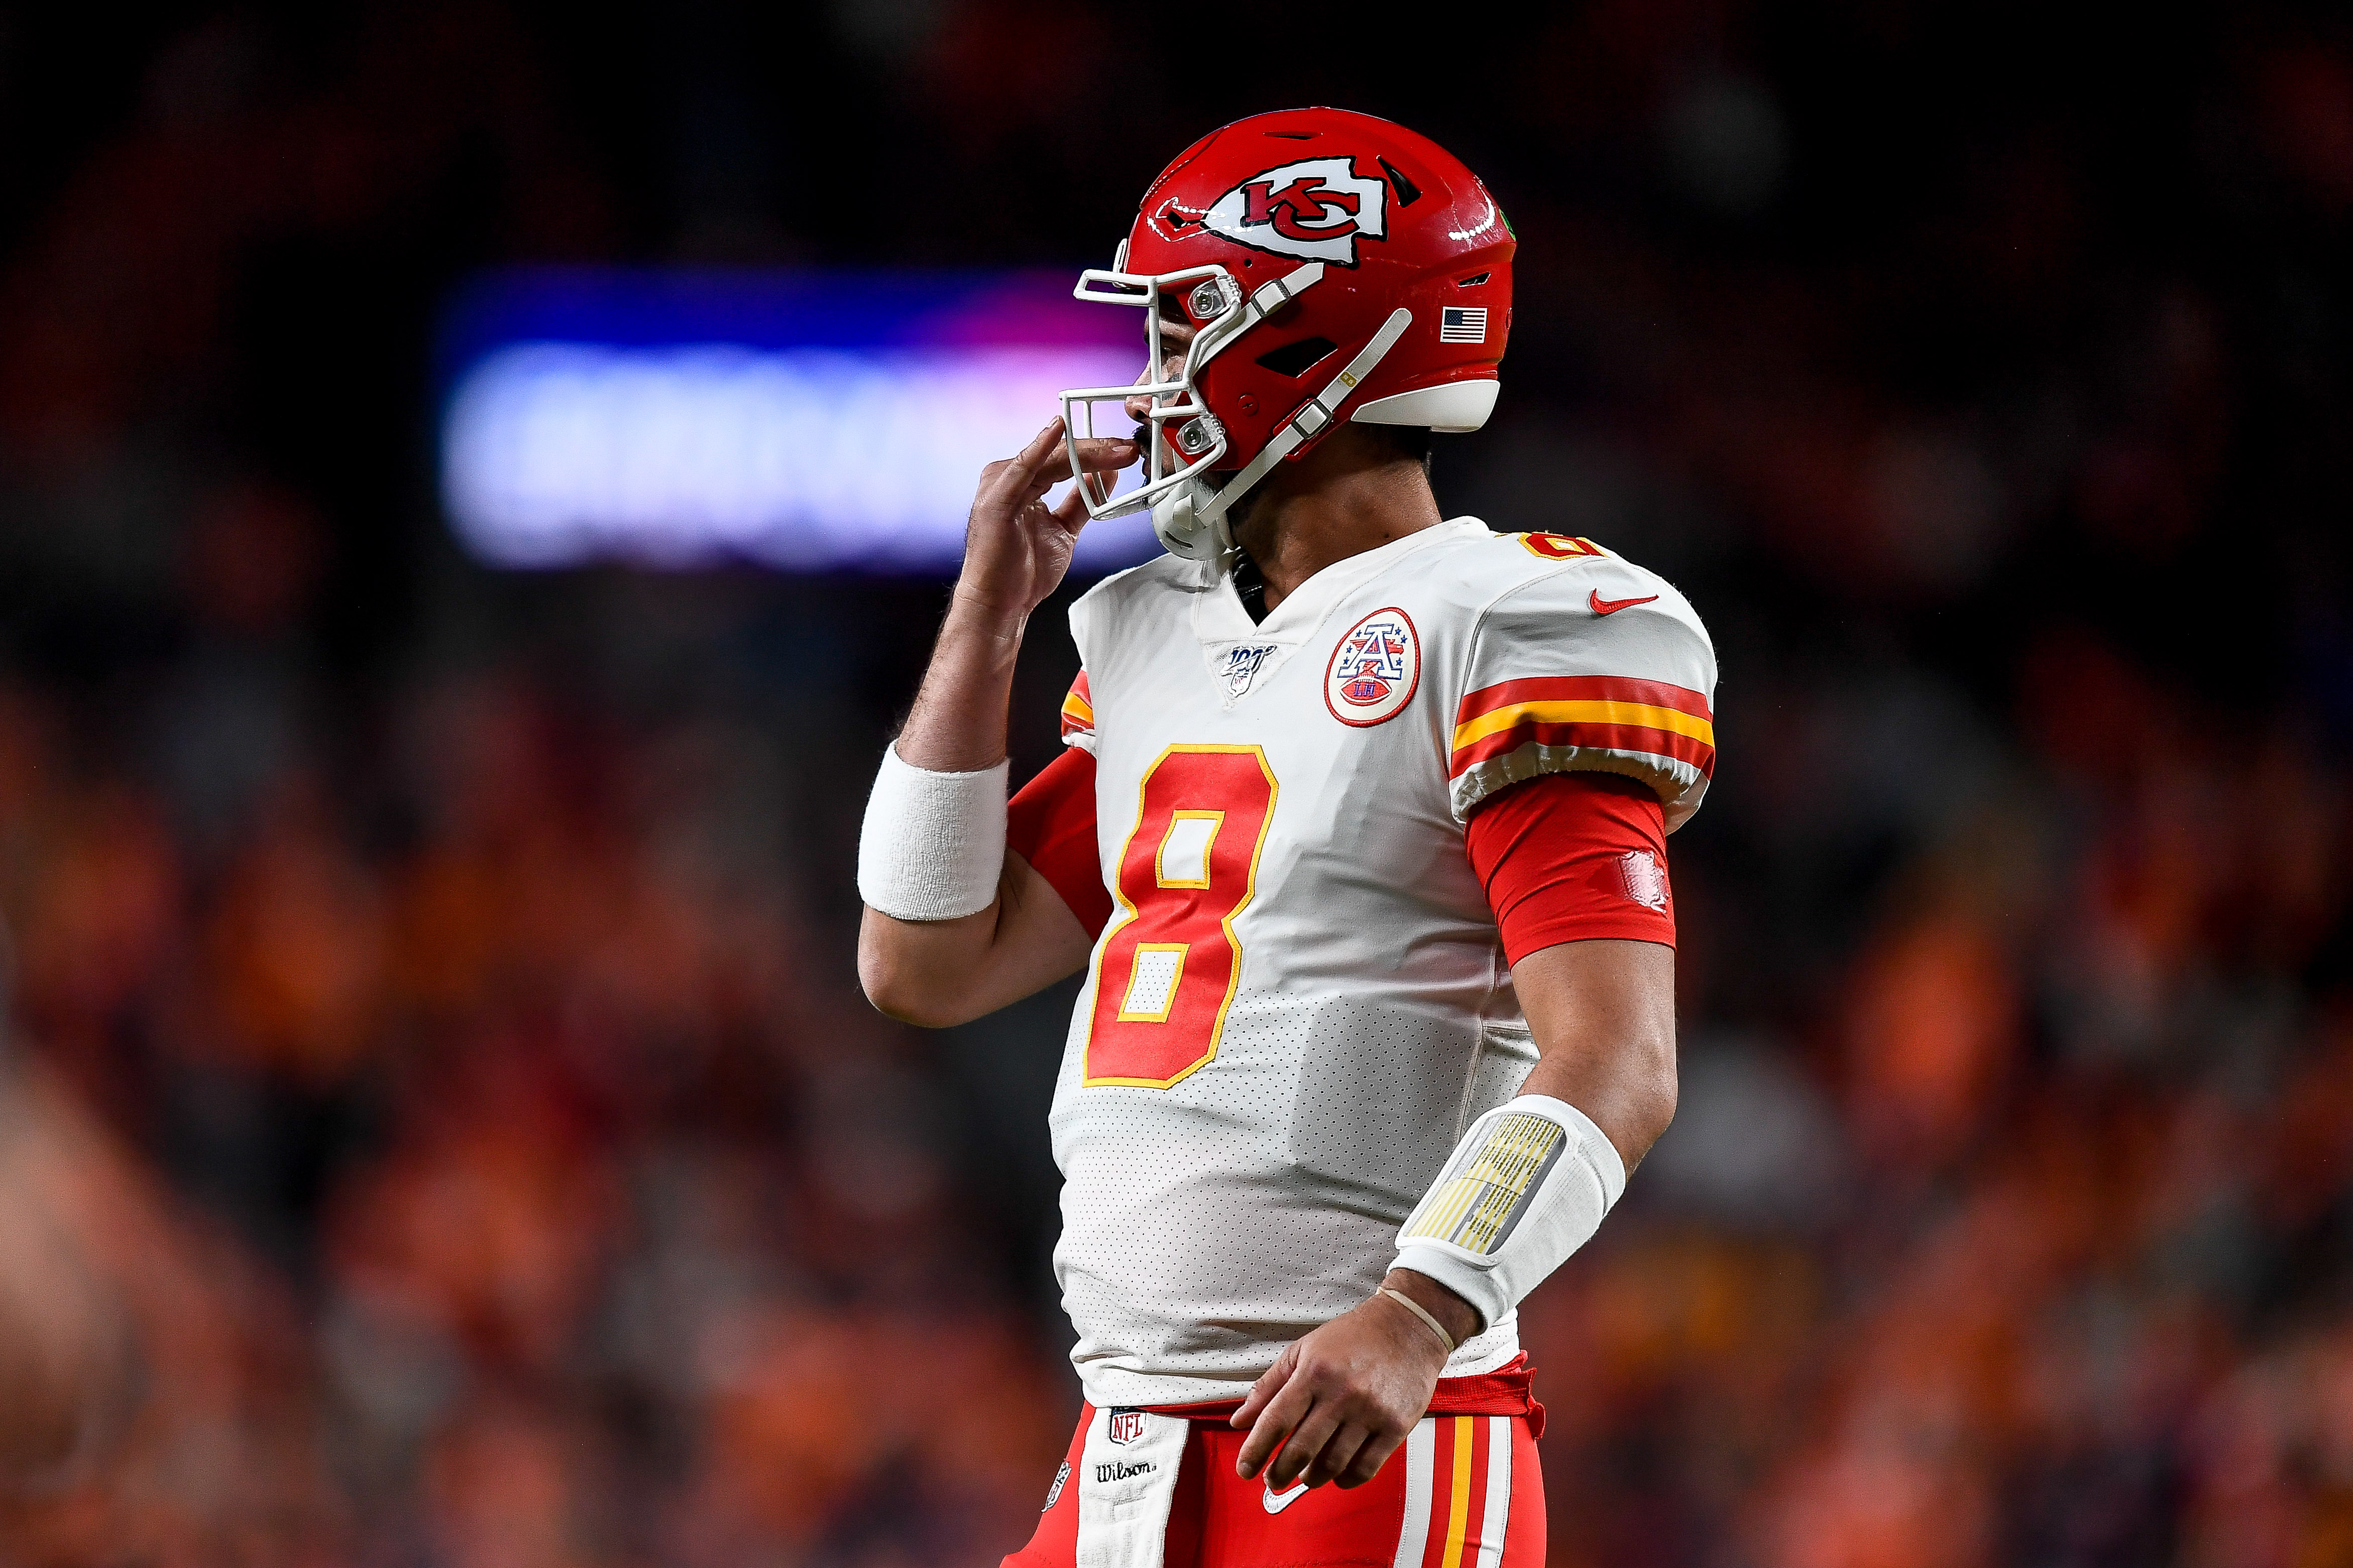 NFL picks 2019, Week 8: The Chiefs' first test without Patrick Mahomes is Green Bay, no big deal